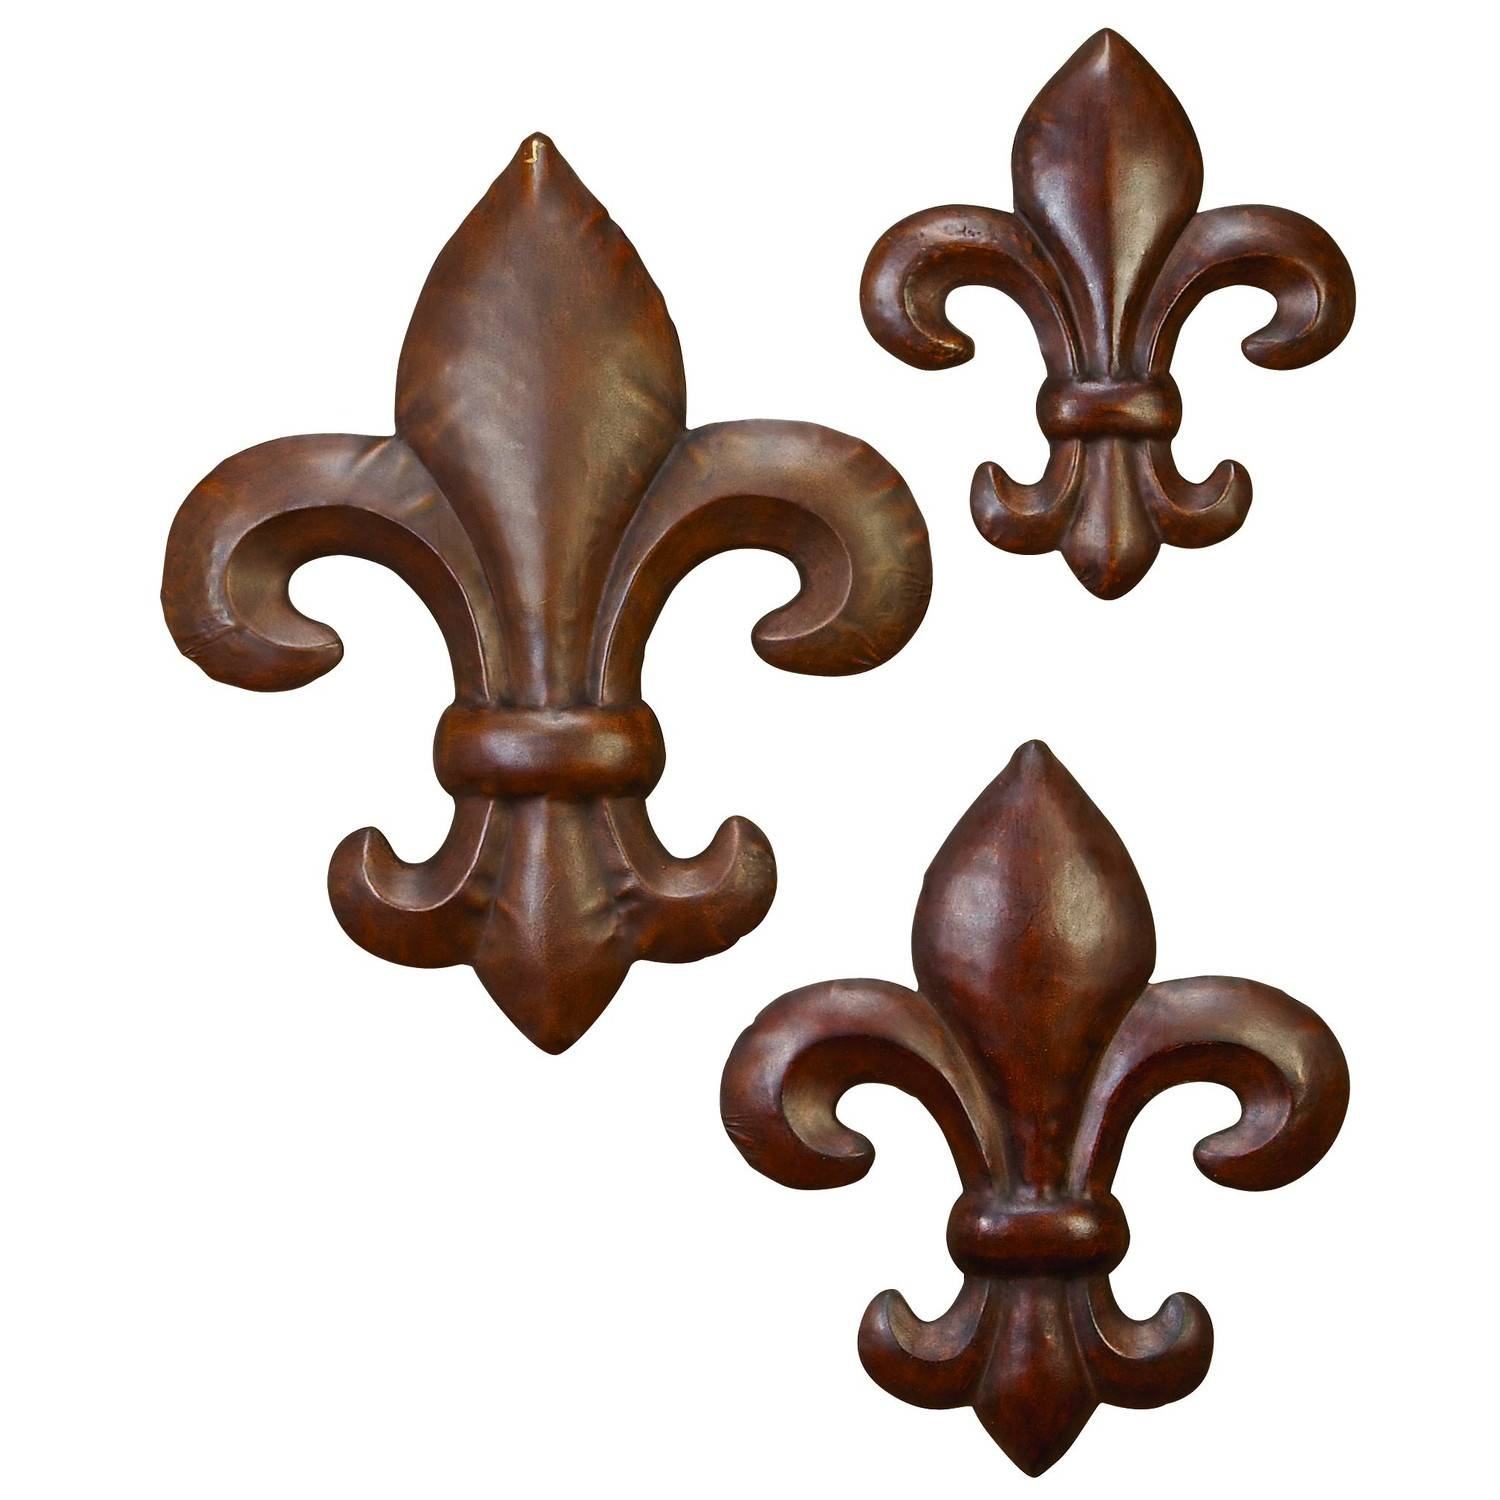 Fleur De Lis Wall Decor With Regard To 2018 Metal Fleur De Lis Wall Art (View 14 of 25)